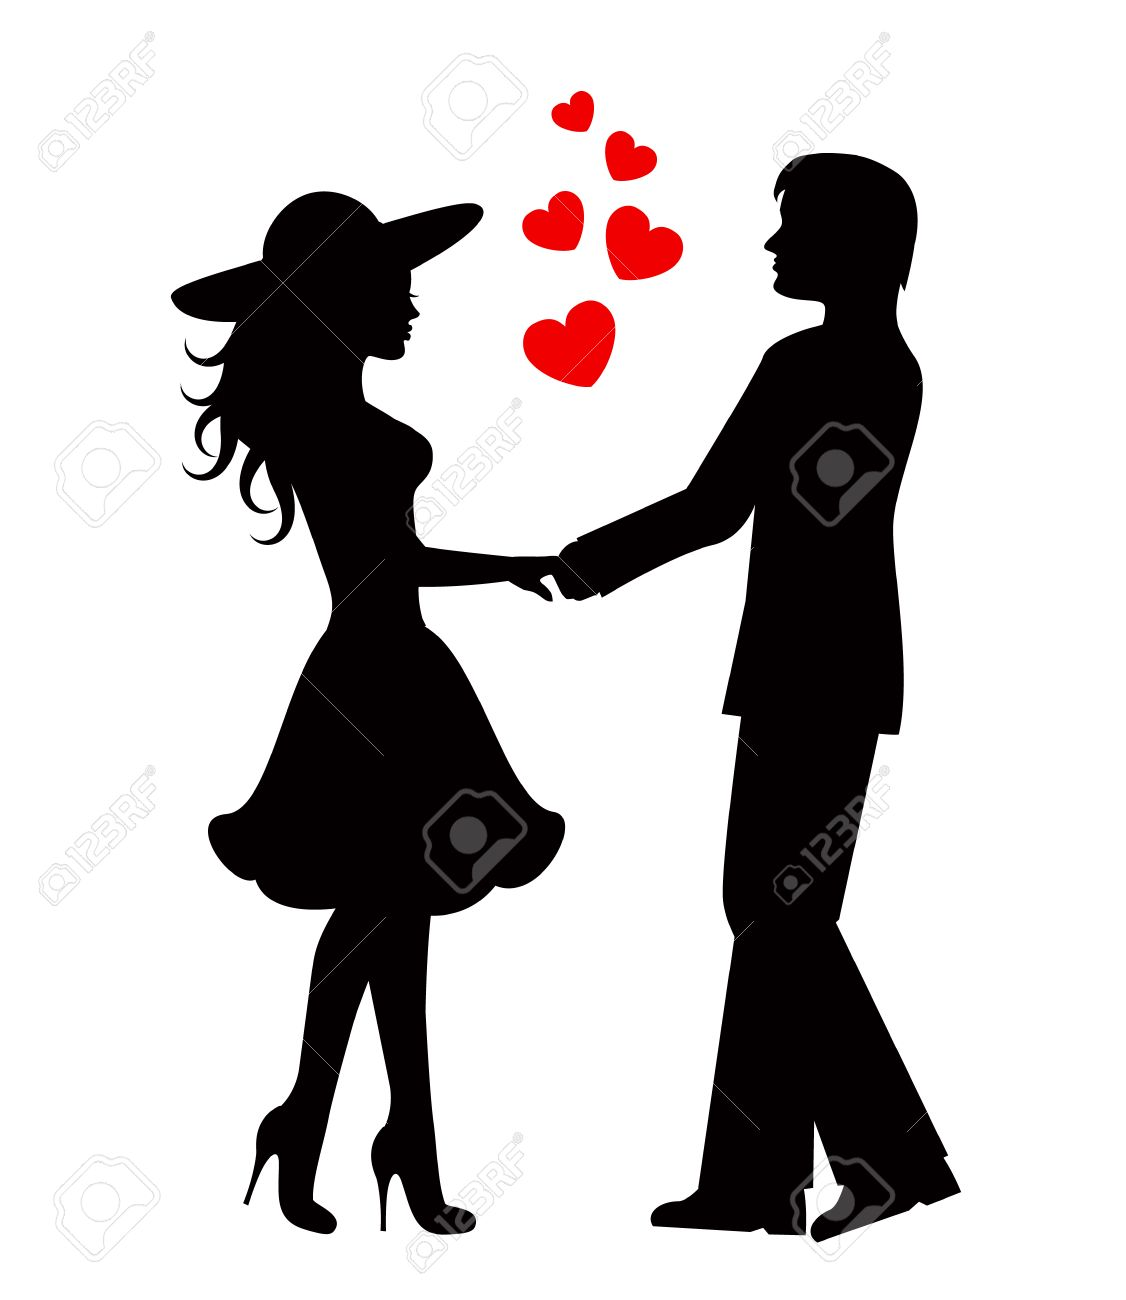 Silhouettes of loving couple black against white background stock vector 28069194